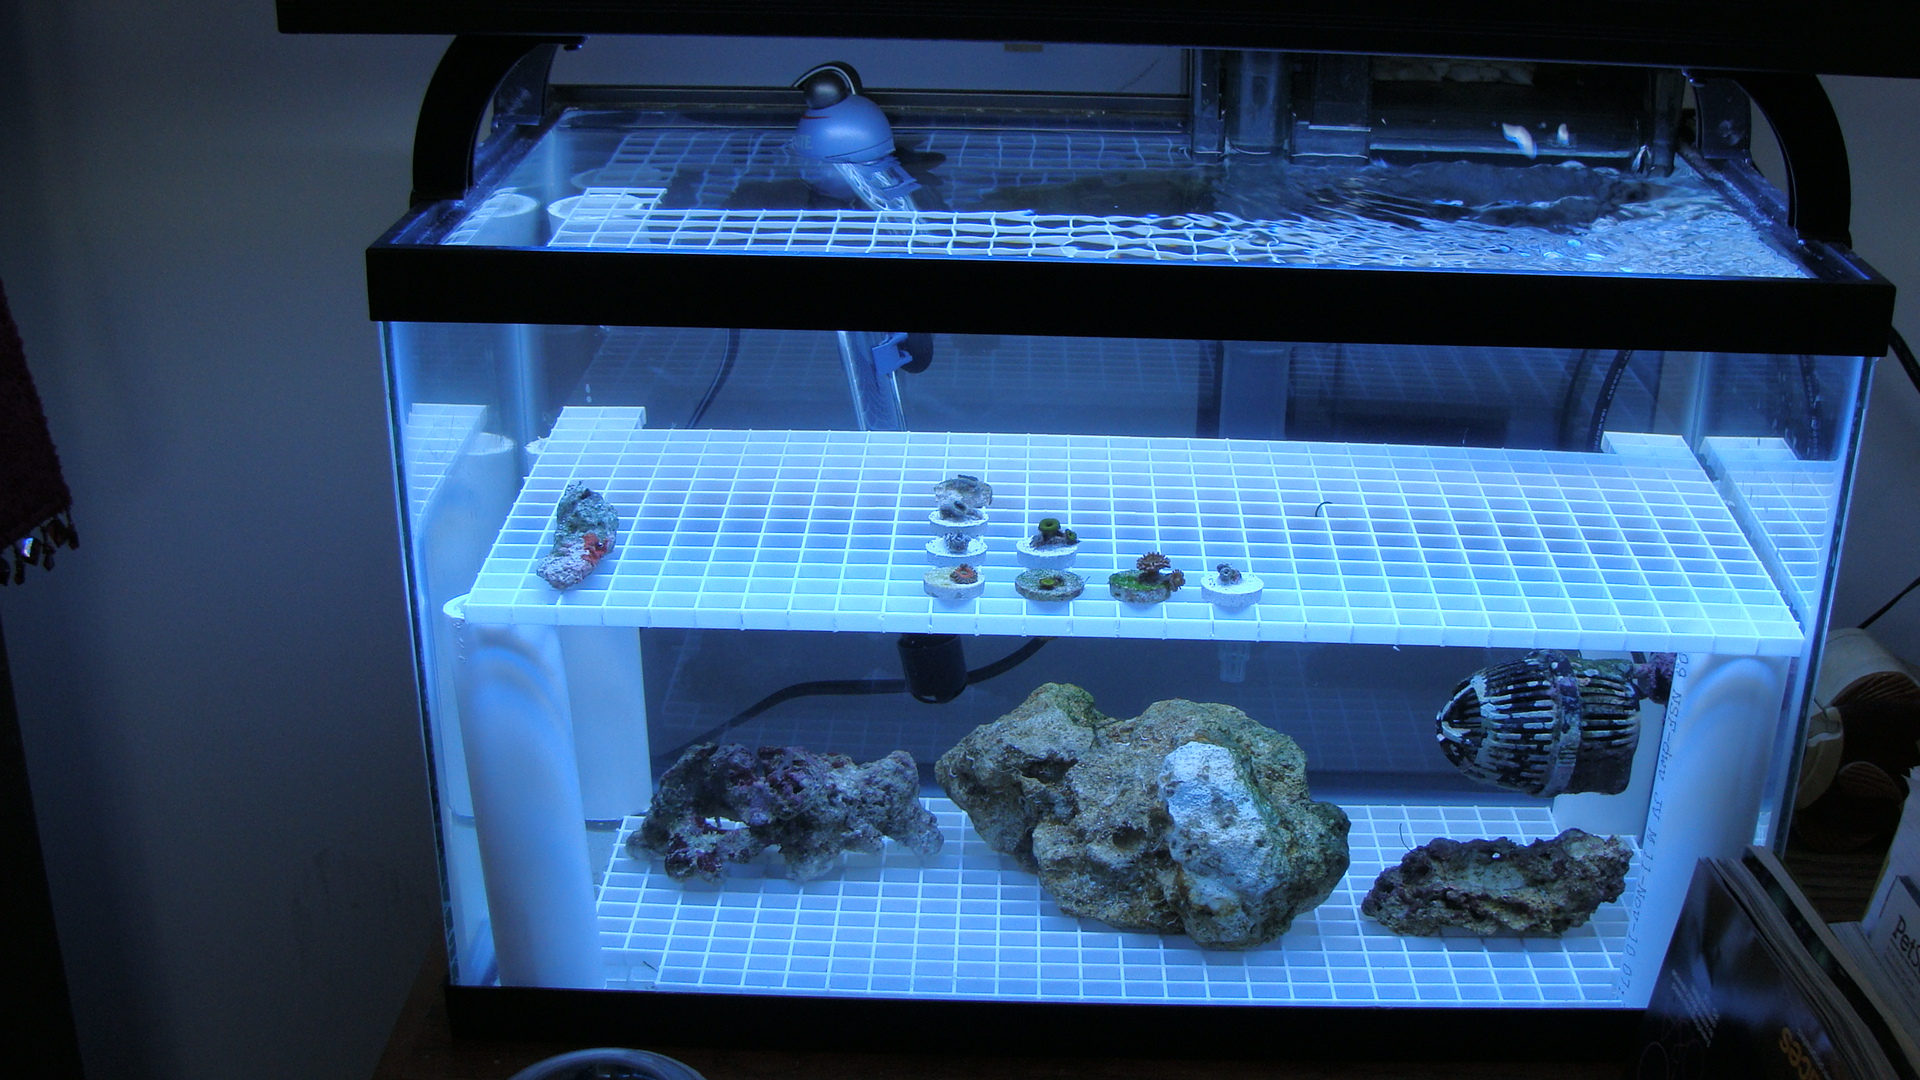 10 G Reef Start Up Looking For Input Saltwaterfish Com